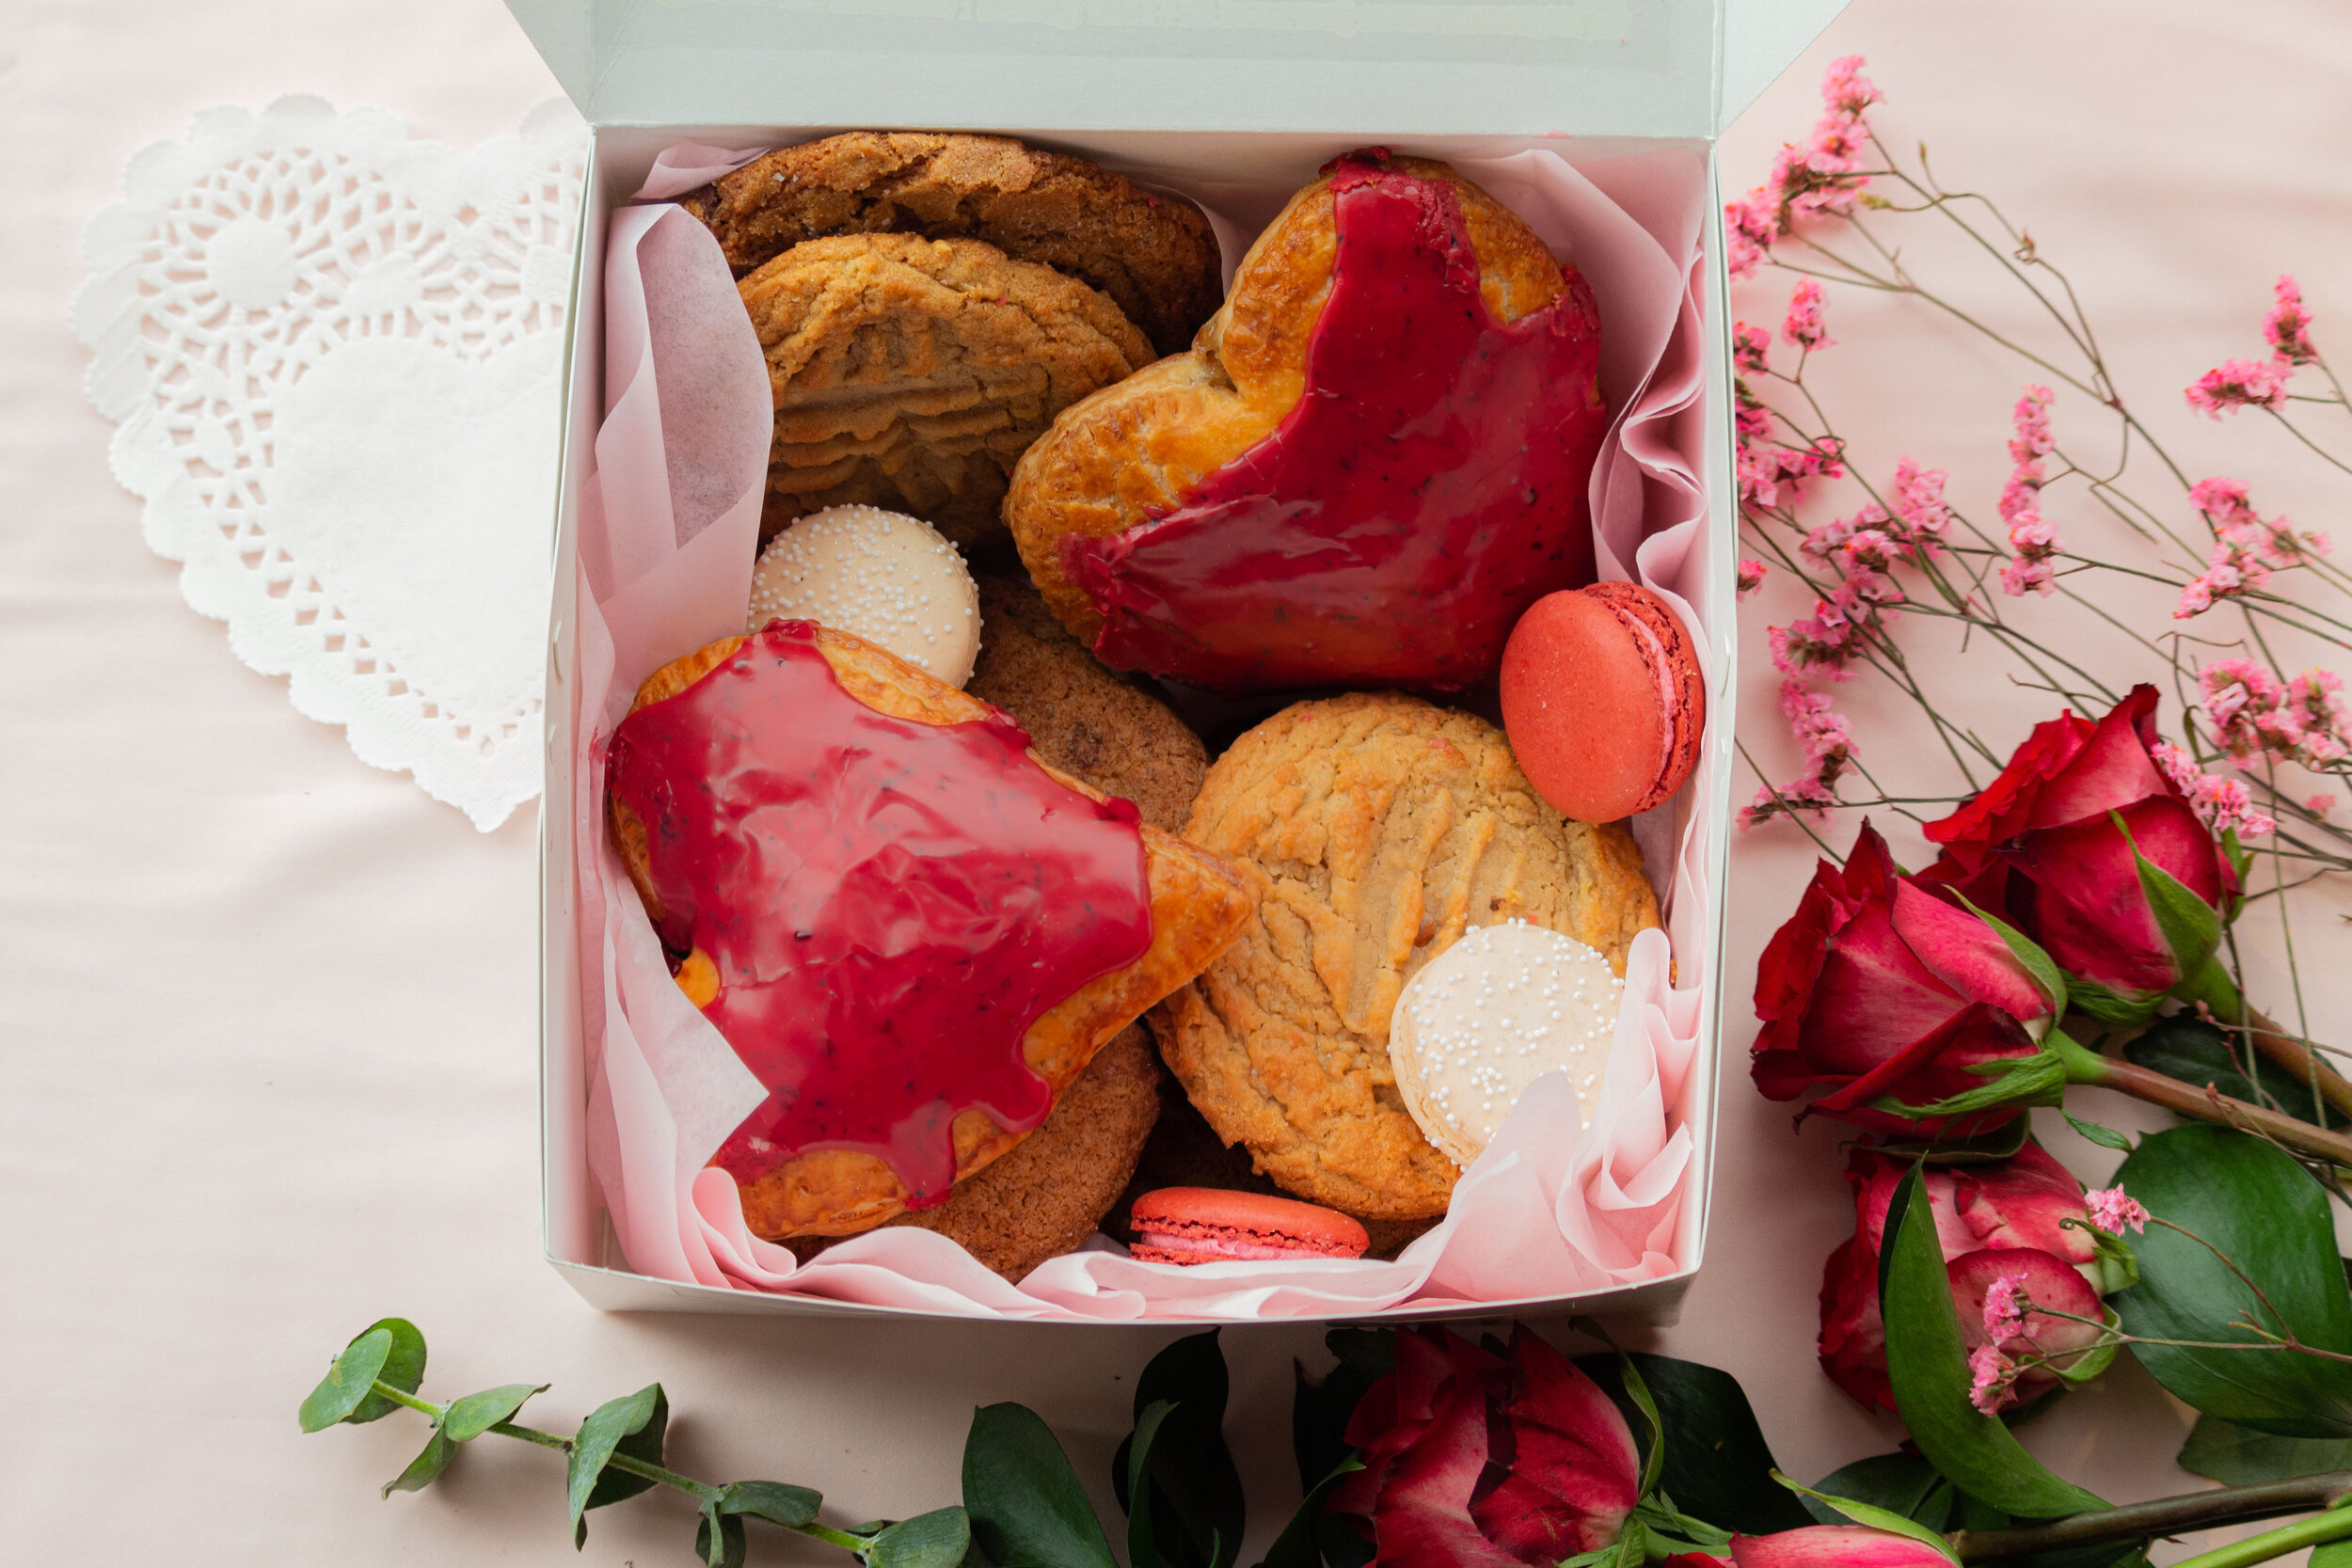 On a pink cloth with roses, a box is filled with heart-shaped and round cookies for Valentine's Day.